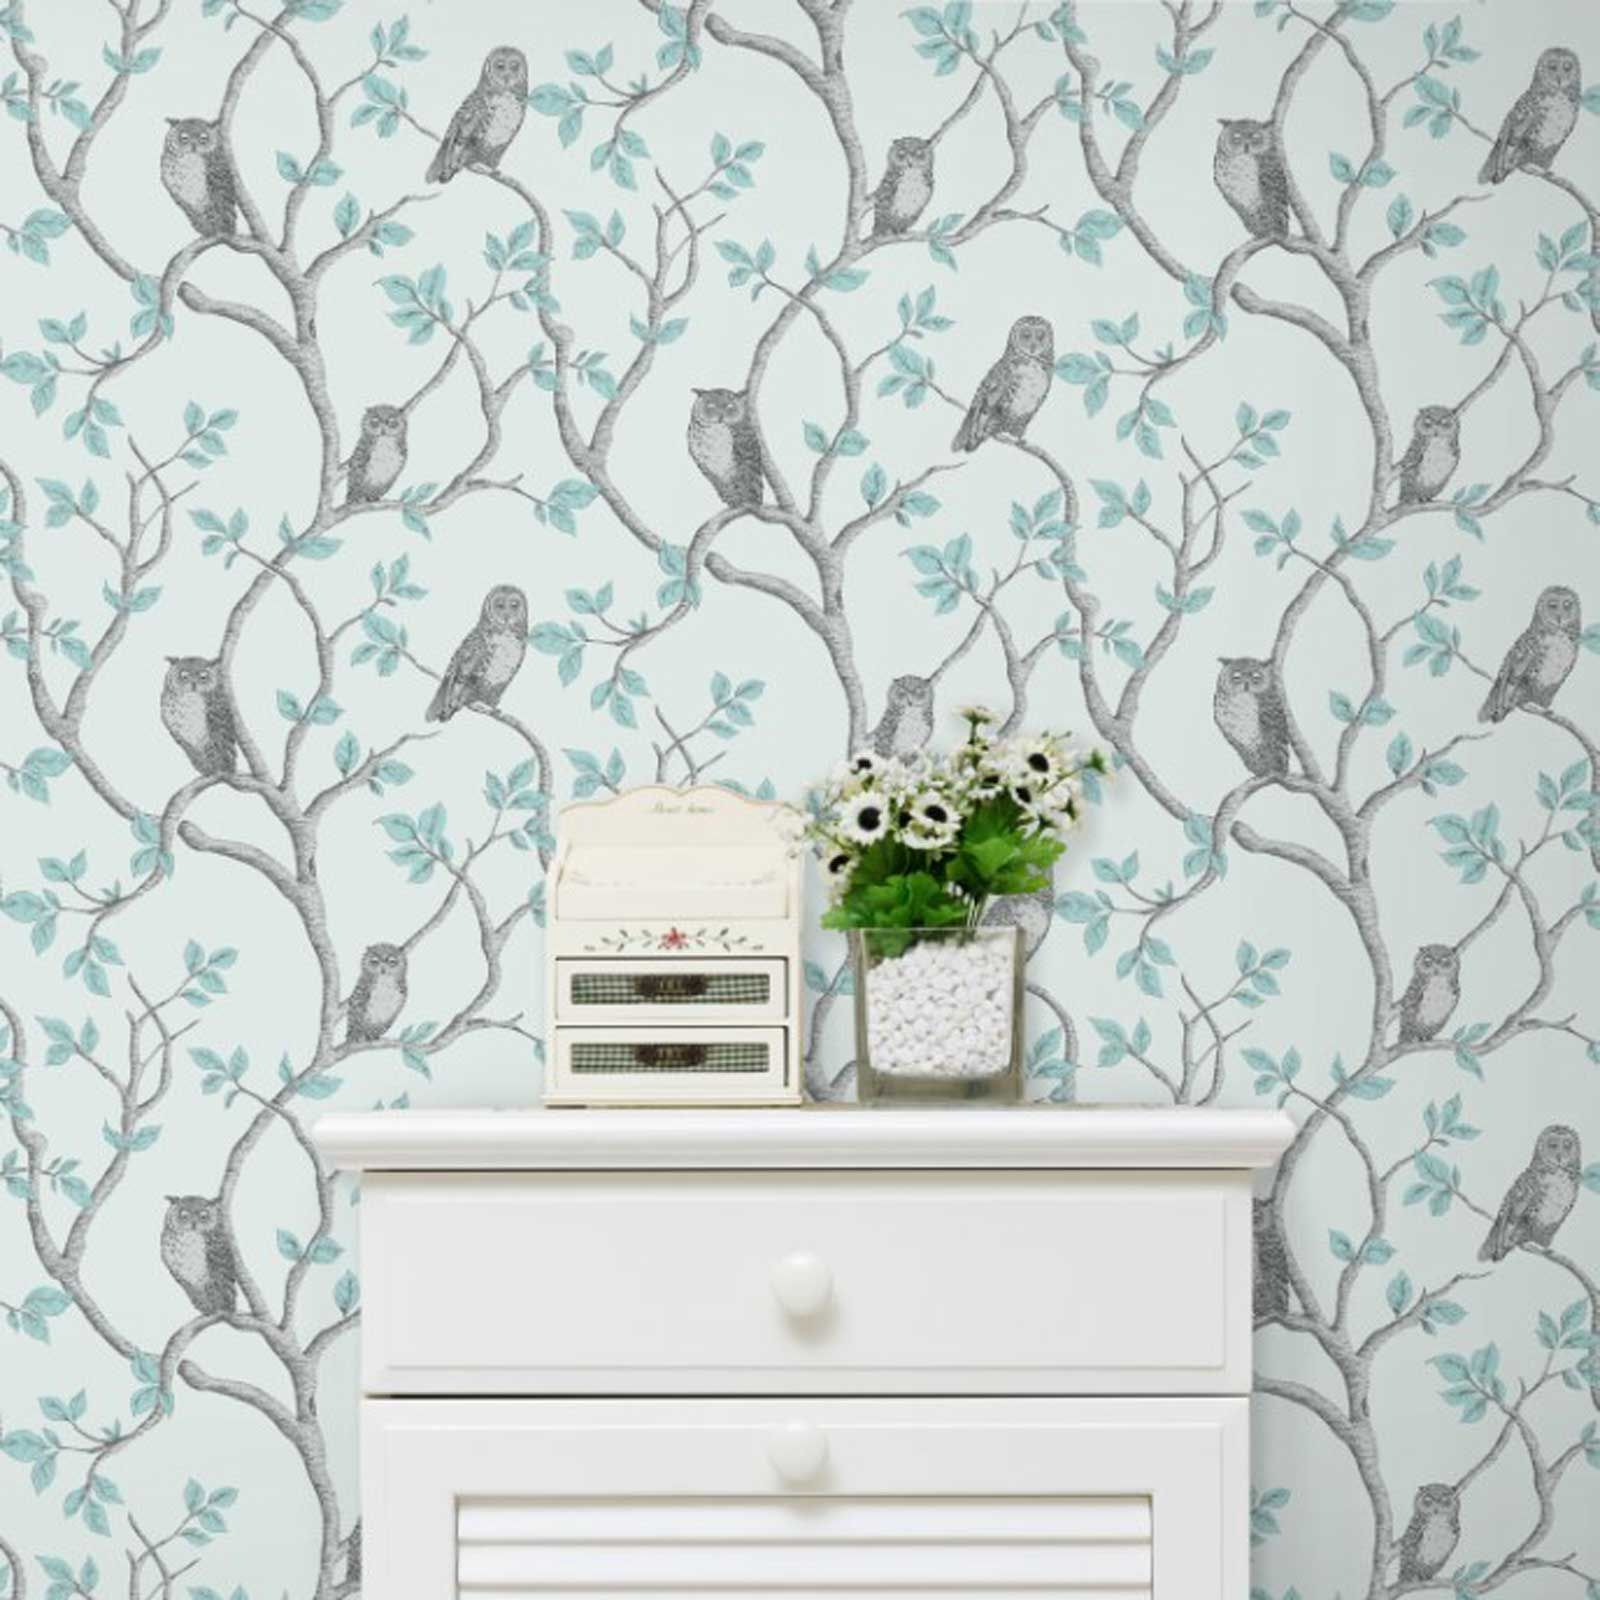 Fine d cor teal duck egg wallpaper shabby chic owl for Duck egg bedroom ideas